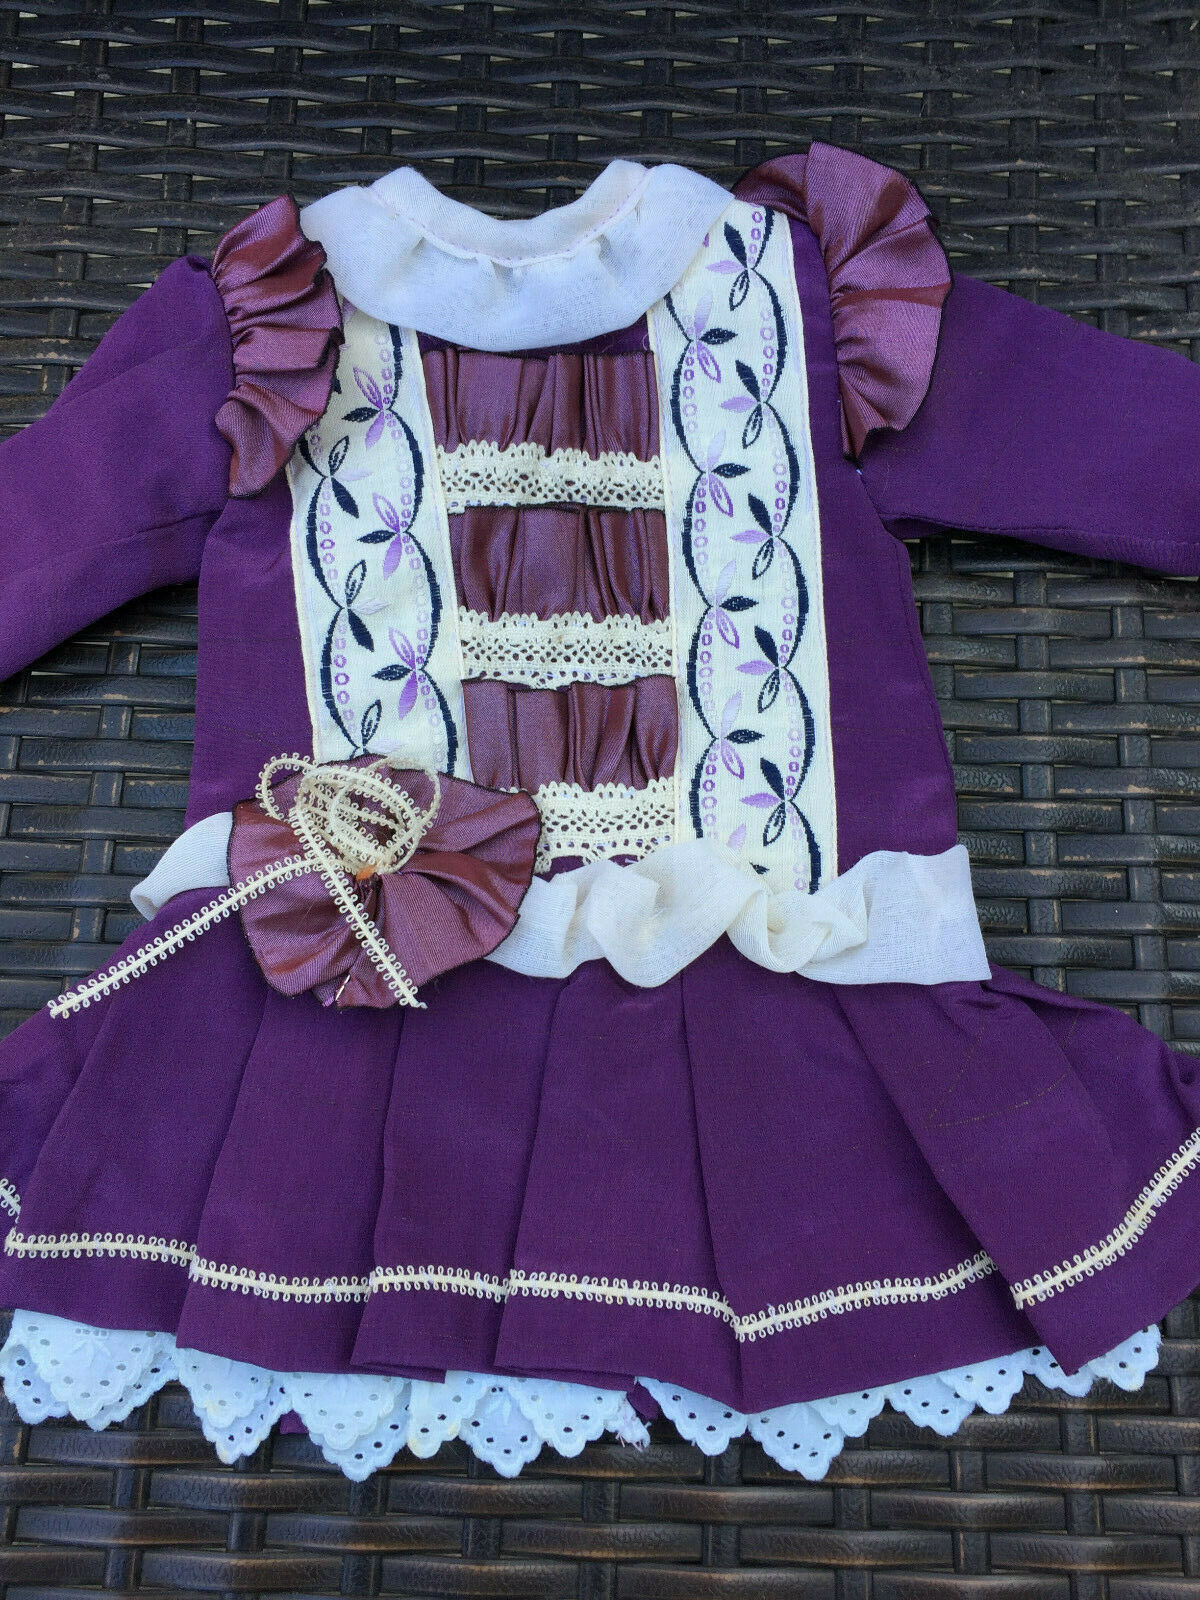 ANTIQUE silk dress for FRENCH doll 4-6 Jumeau Steiner Bru antique lace